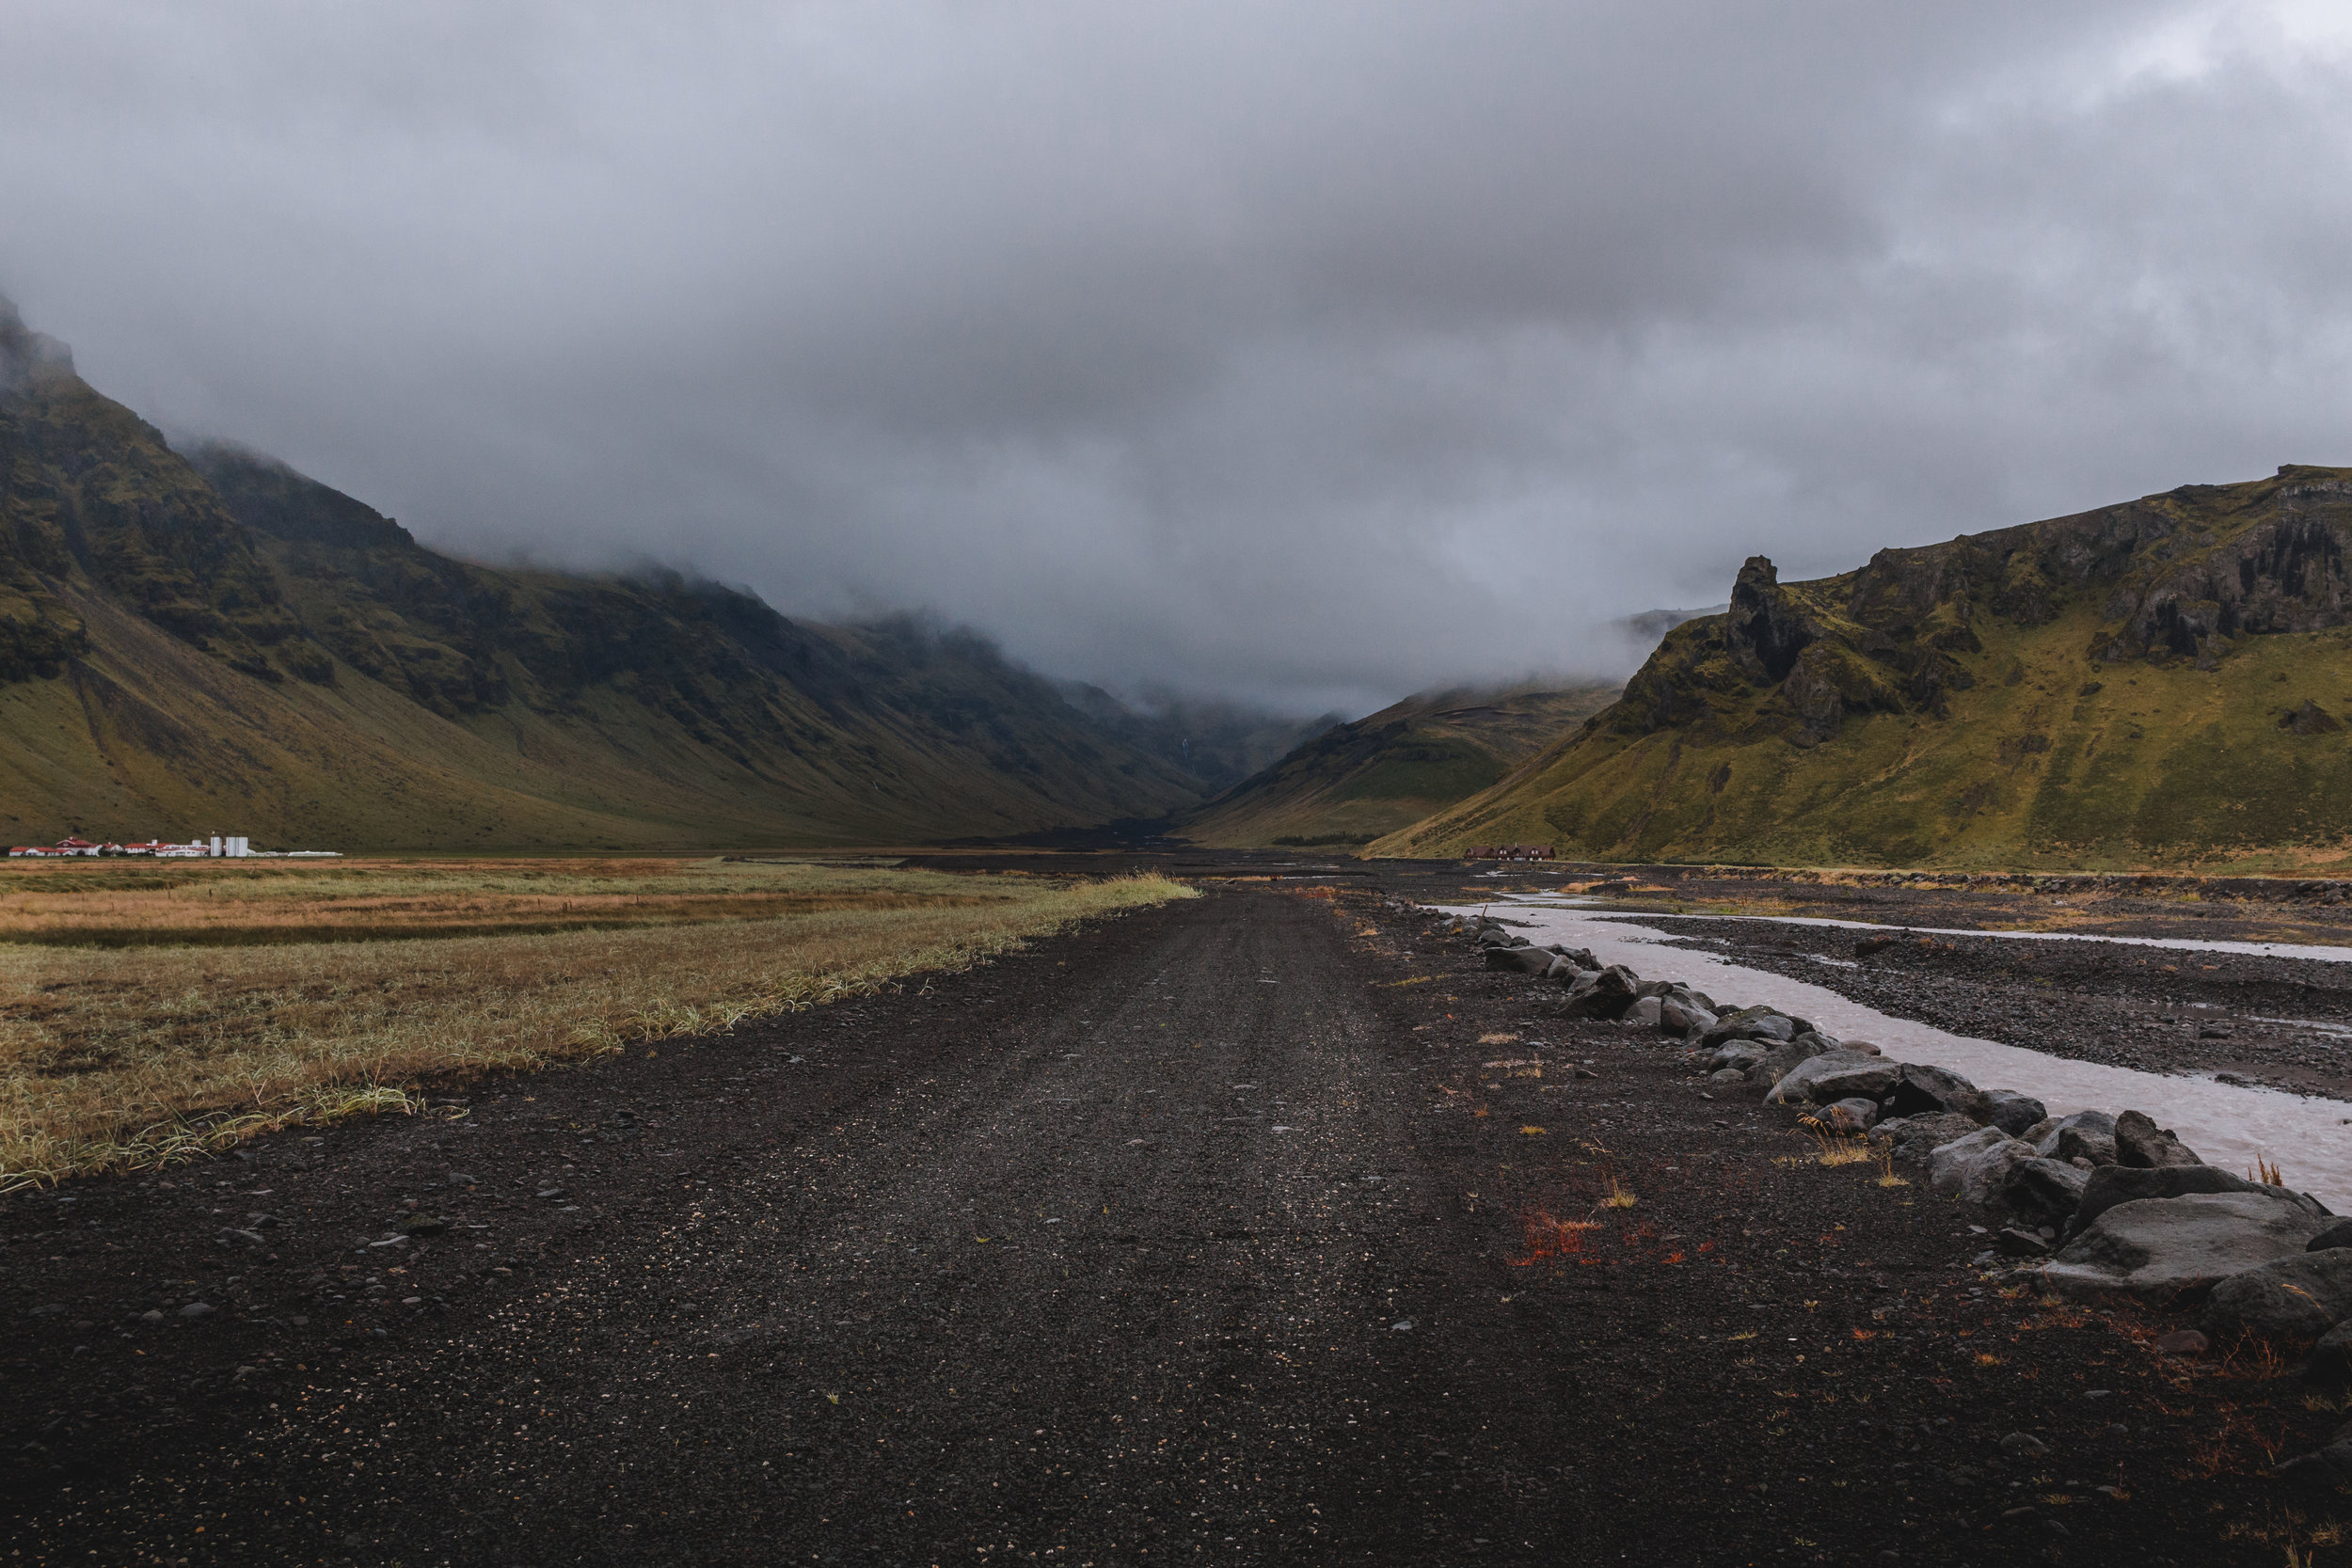 Road leading into Landmannalaugar